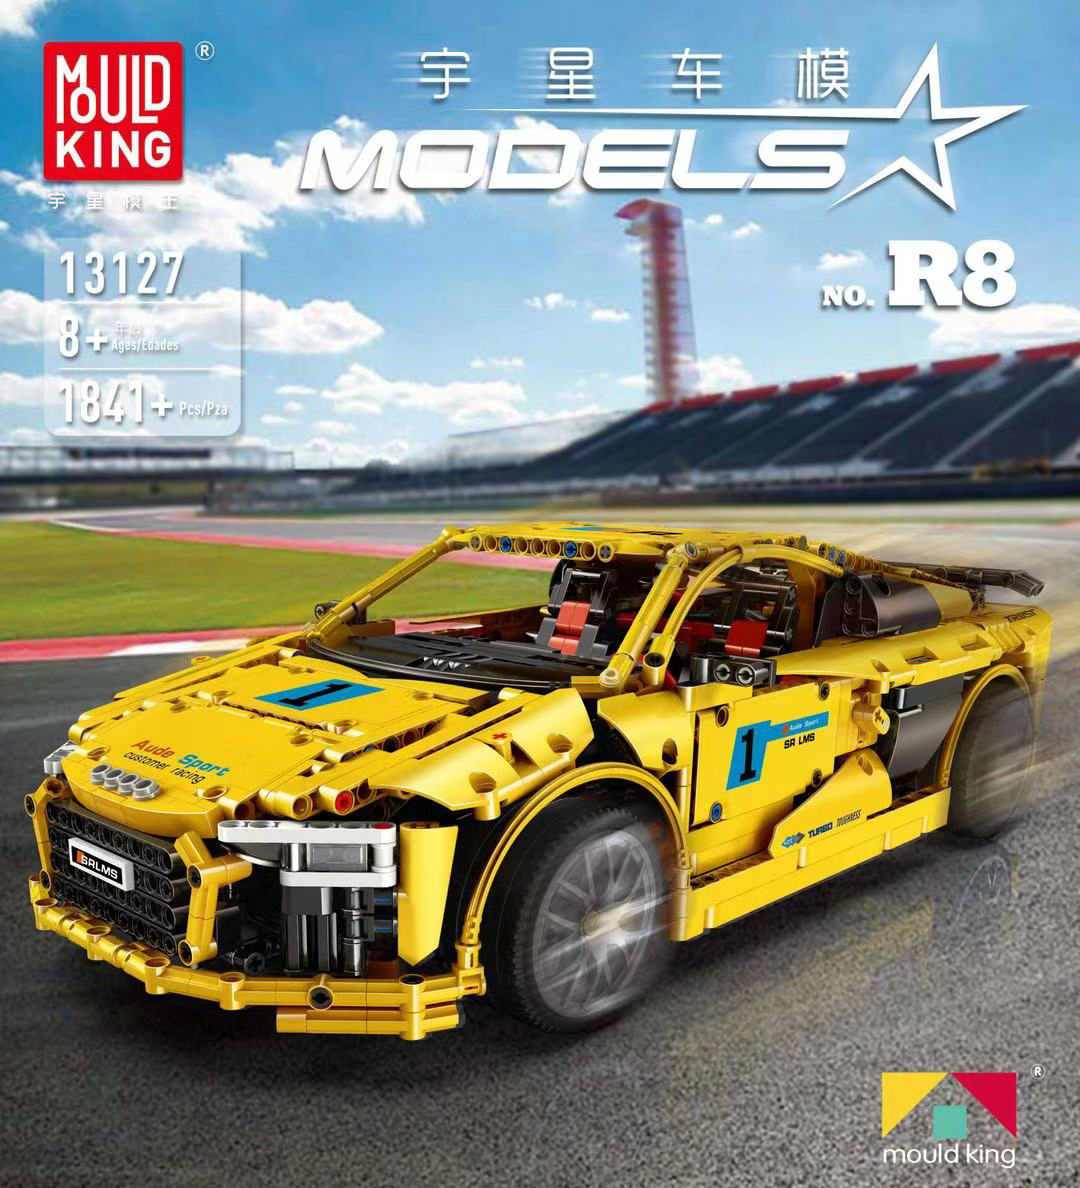 Technic Series Bricks R8 Speed Racing Car Model Kit Building Blocks Toys For Children Compatible With Legoed MOC-4463 DIY Gifts